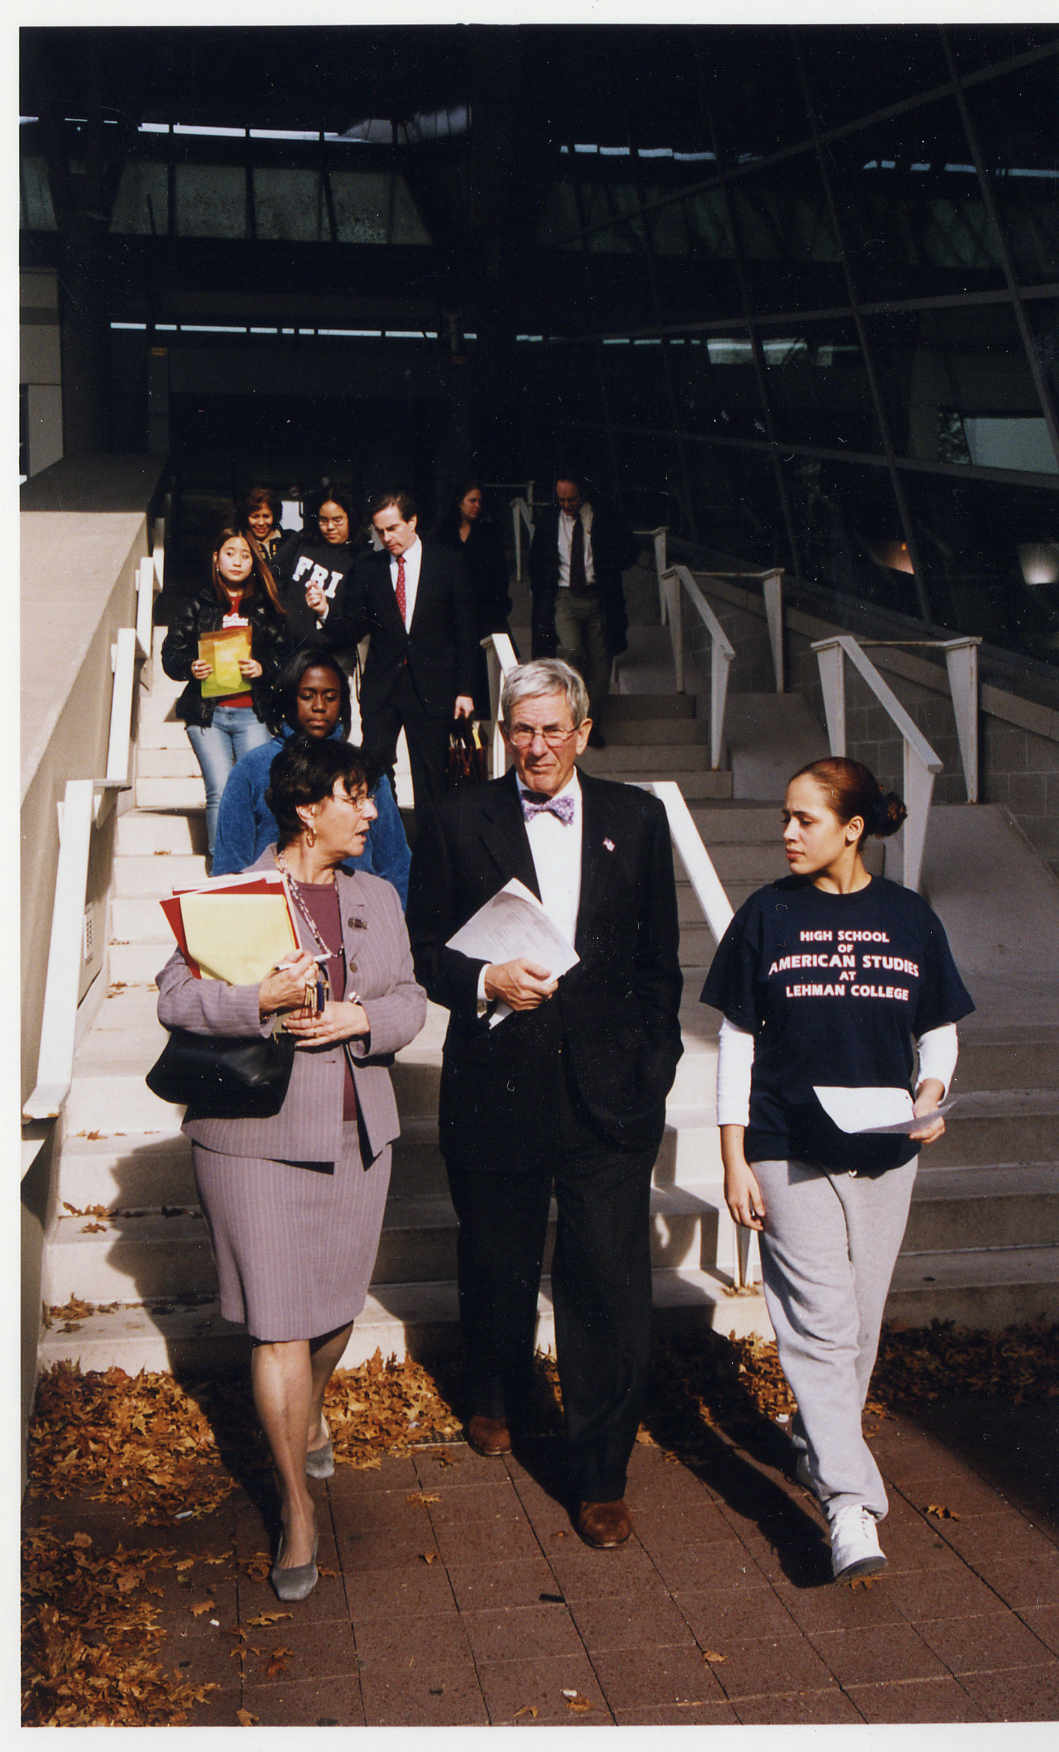 Richard Gilder at the High School of American Studies at Lehman College, a Gilder Lehrman Flagship School